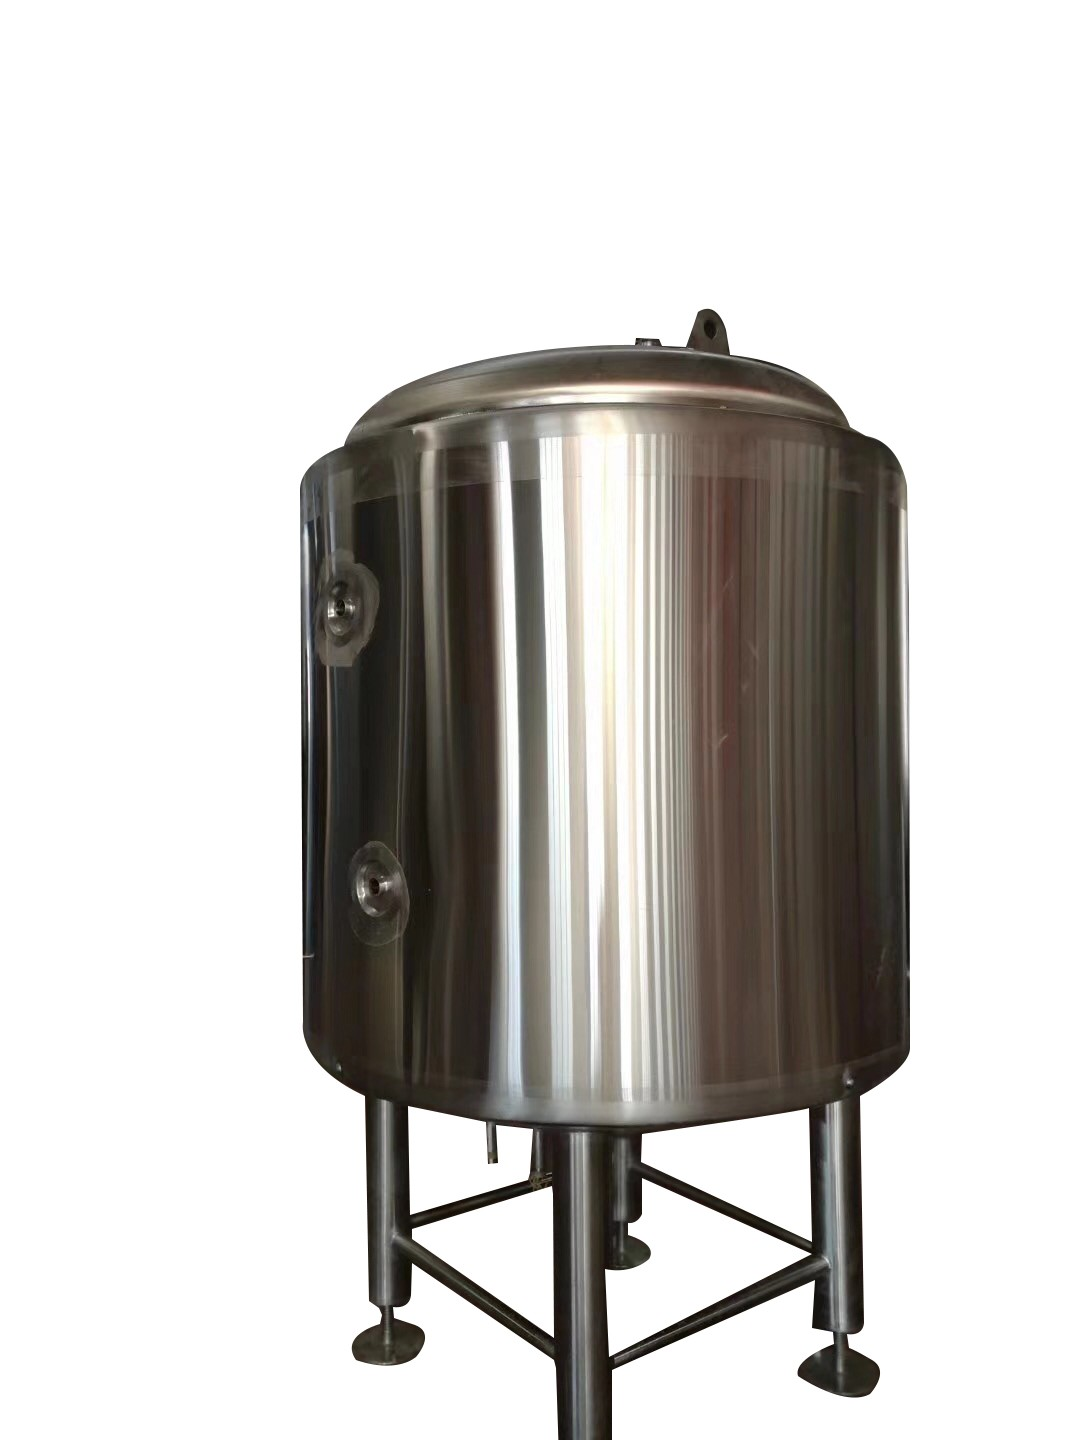 3BBL Bright Beer Tank Manufacturers, 3BBL Bright Beer Tank Factory, Supply 3BBL Bright Beer Tank